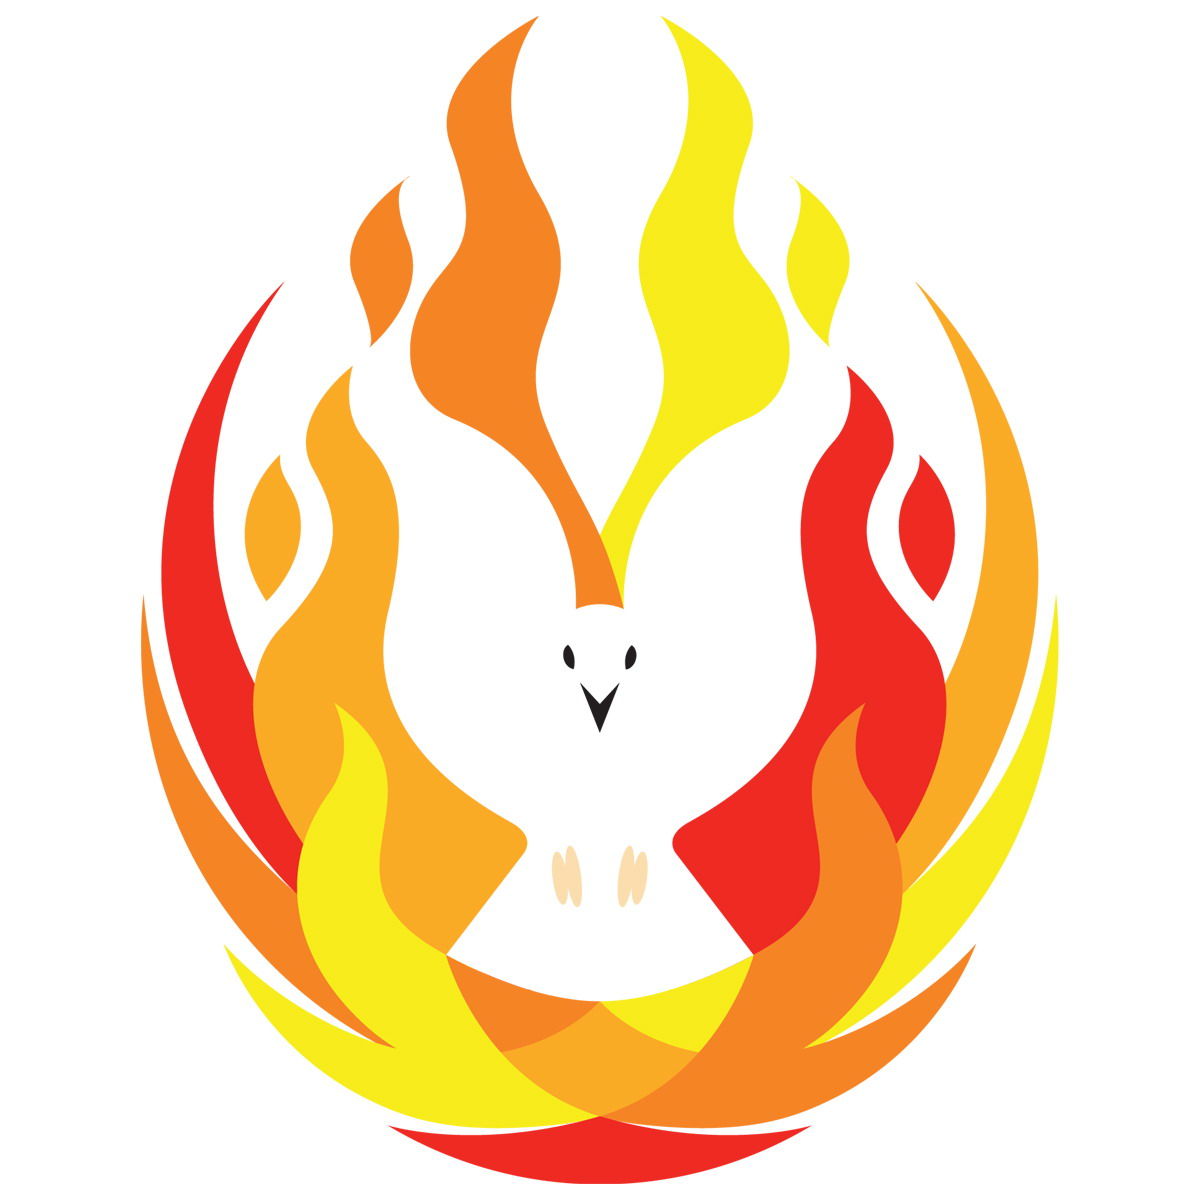 Holy Spirit Flame Dove images pictures.